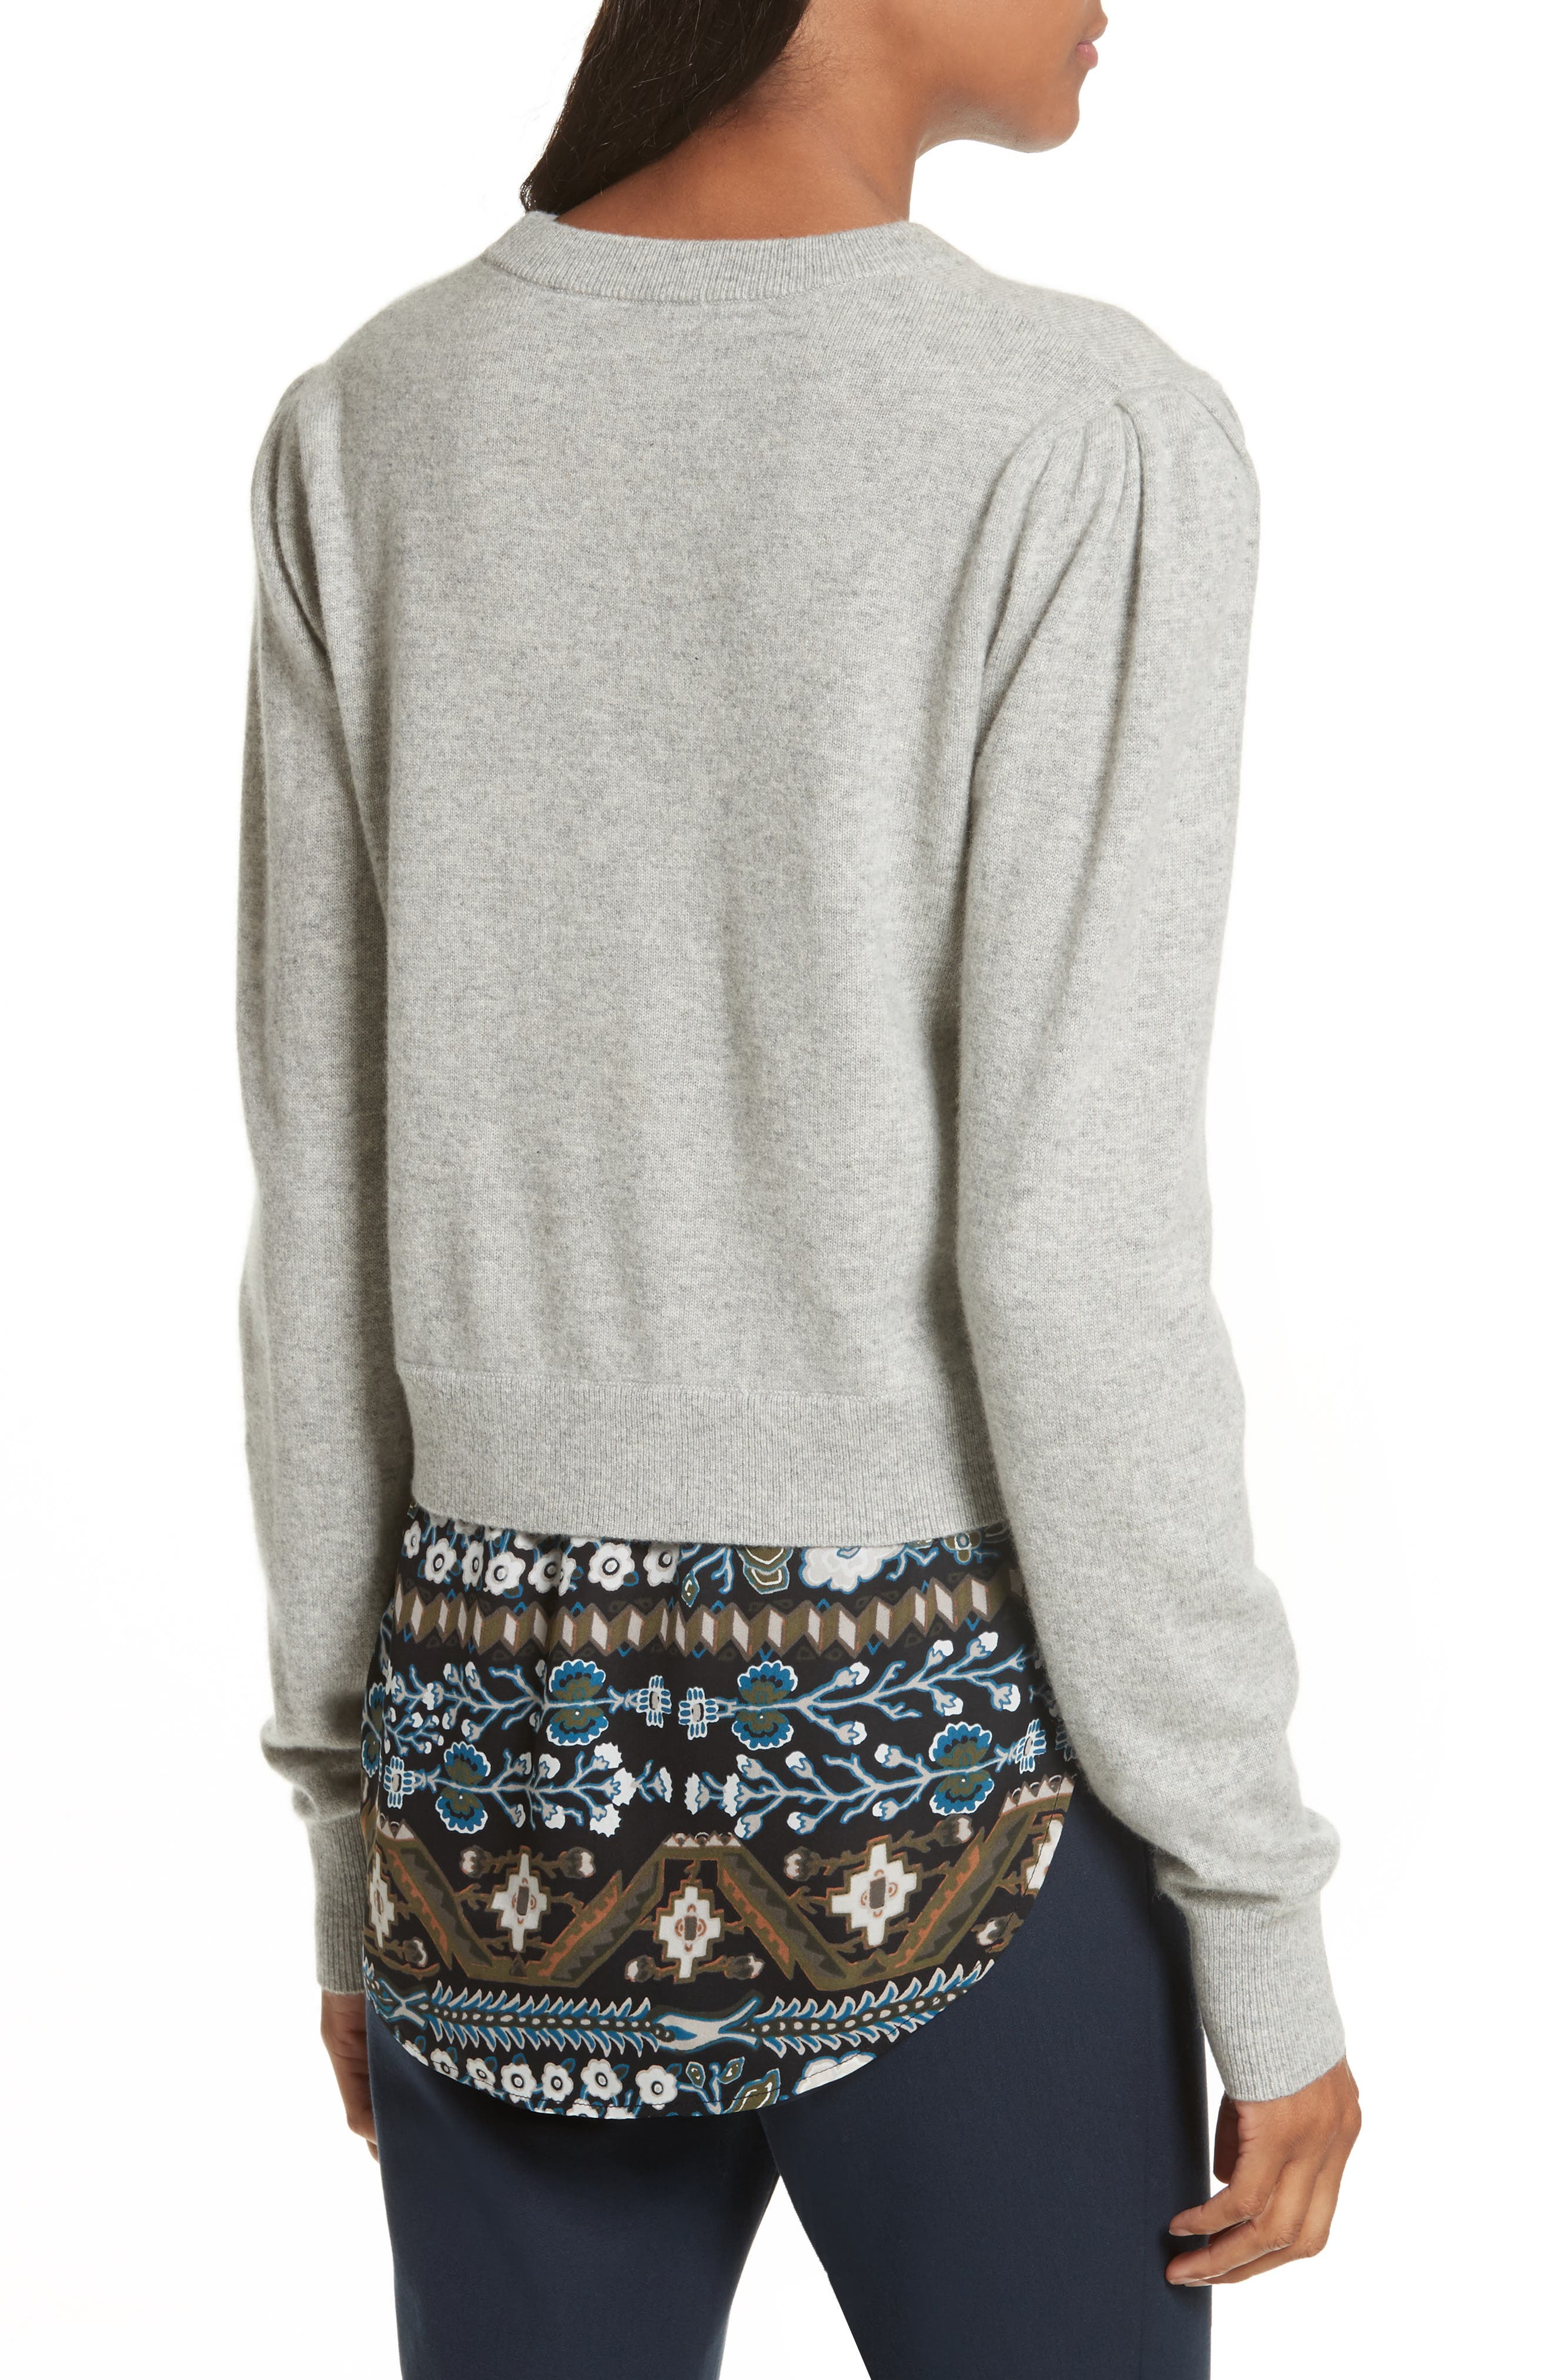 Jenson Layered Hem Cashmere Sweater,                             Alternate thumbnail 2, color,                             Grey/ Army/ Black Aztec Print